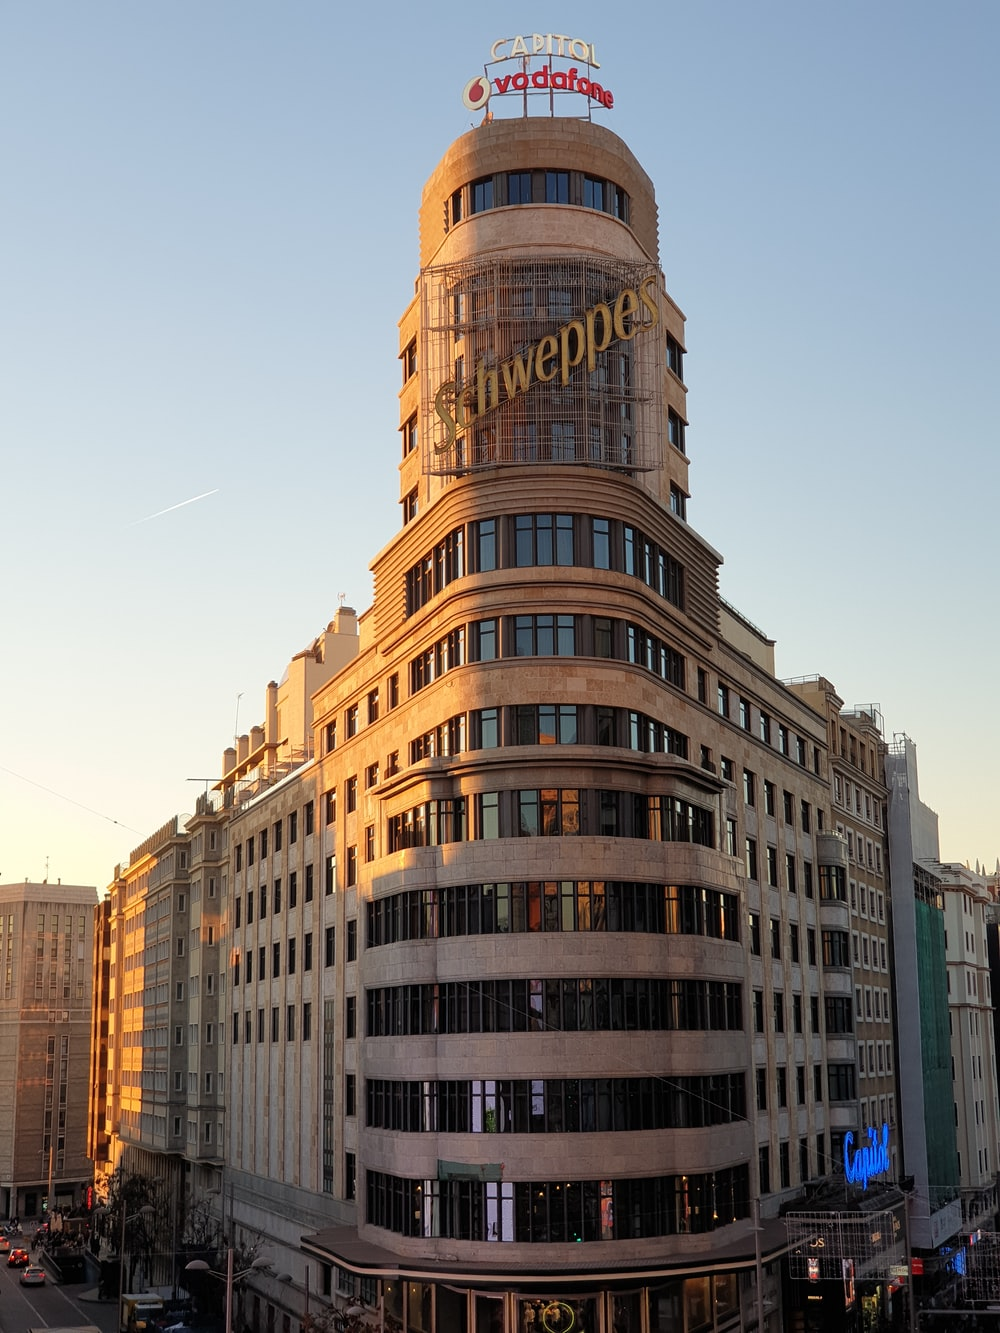 brown Schweppes building during daytime